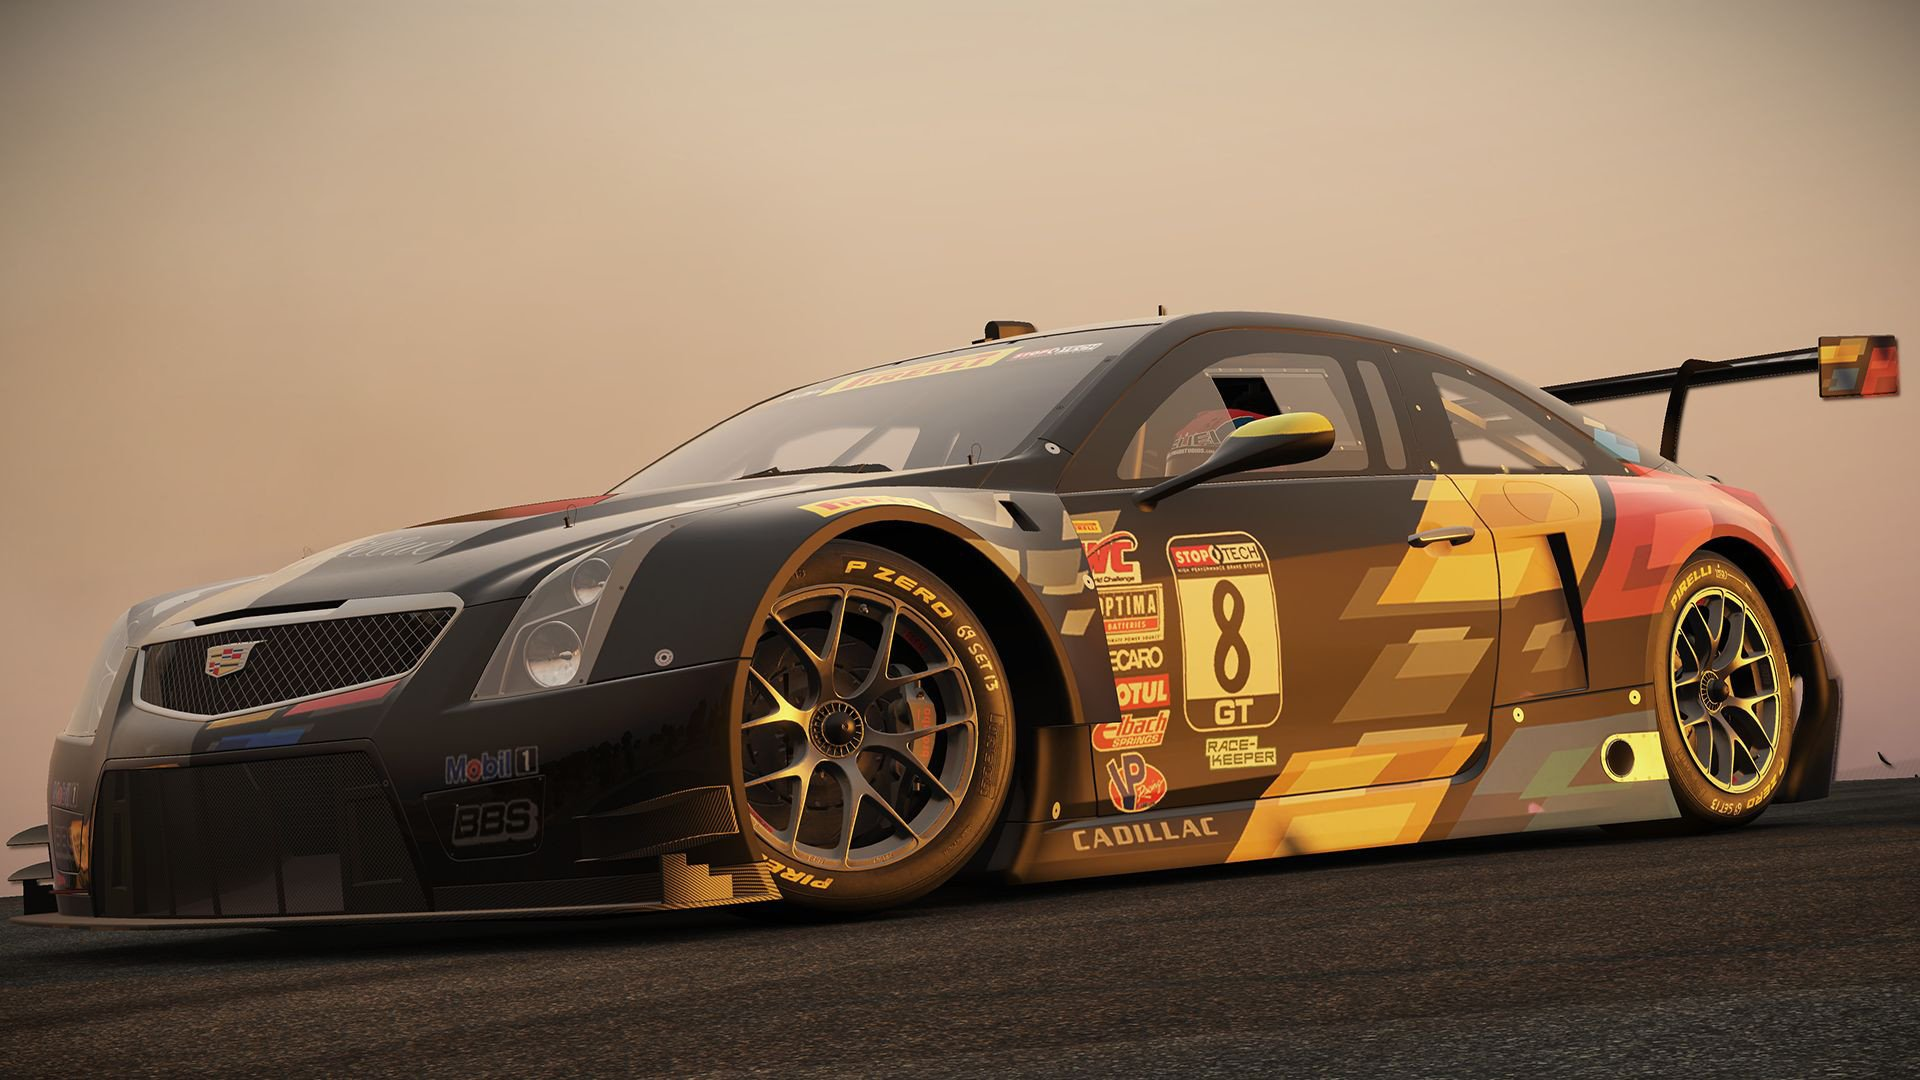 Fast And Furious Cars Hd Wallpapers Project Cars Ats Vr Gt3